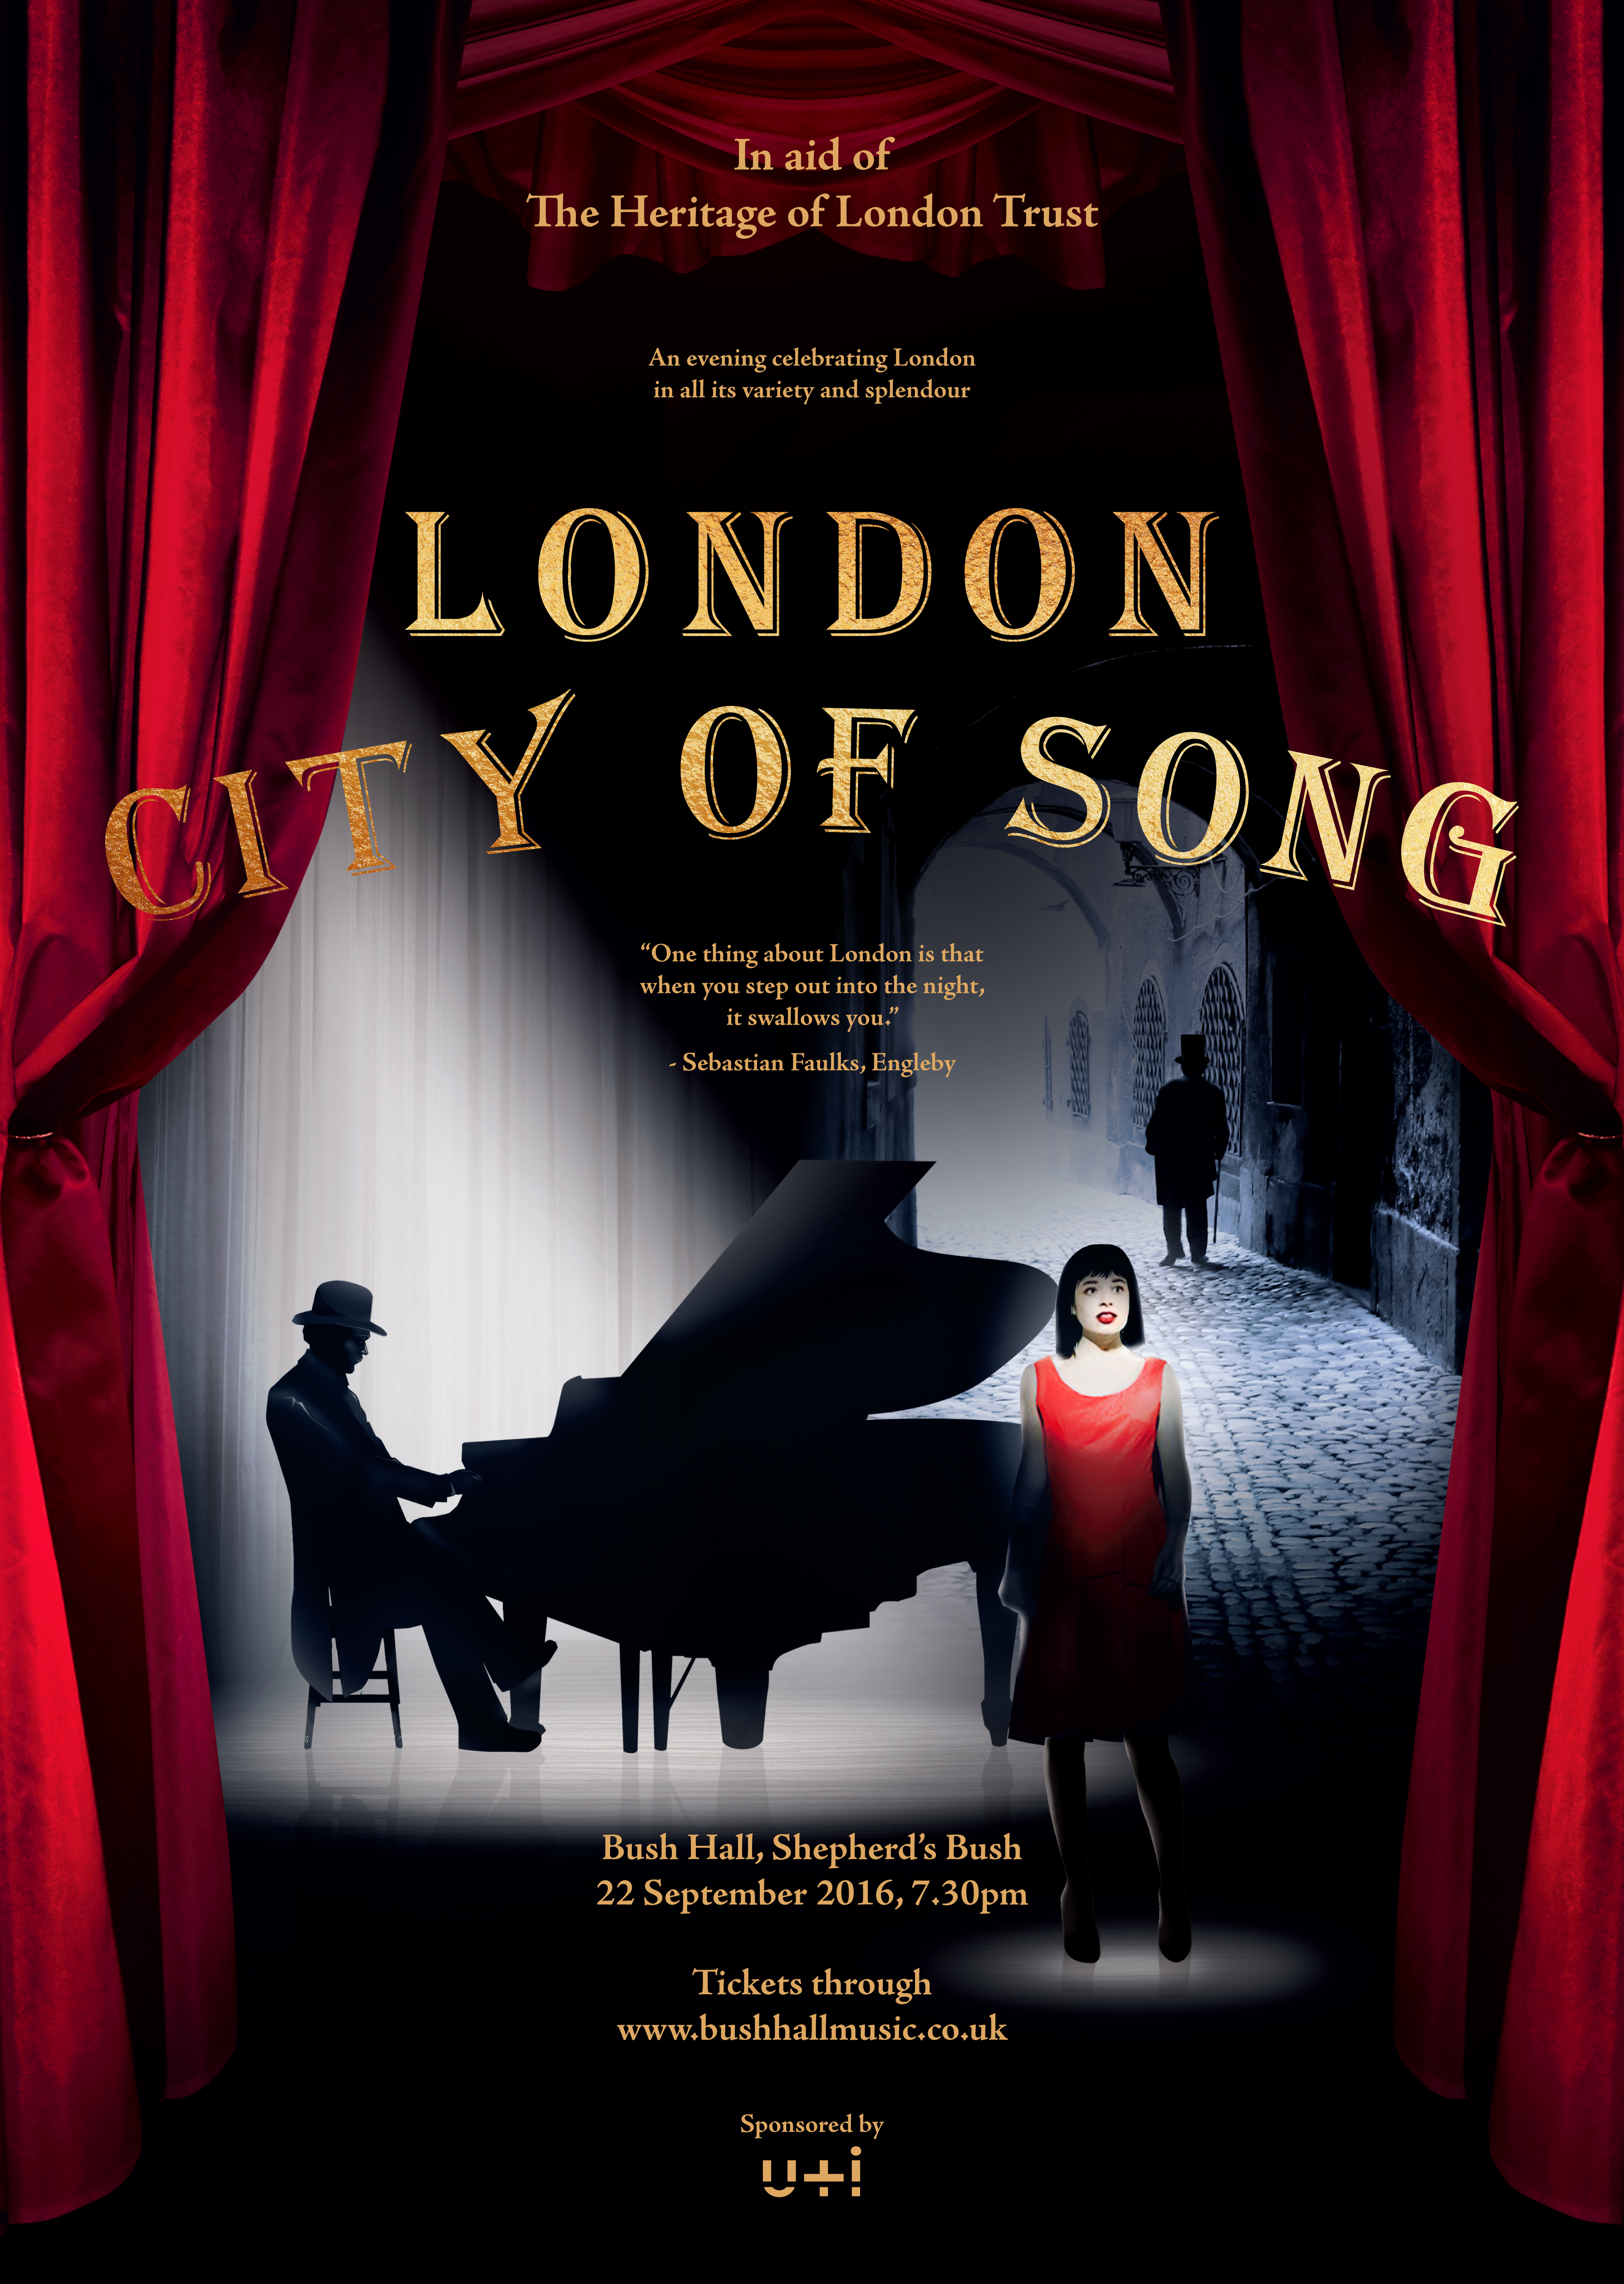 LONDON: CITY OF SONG